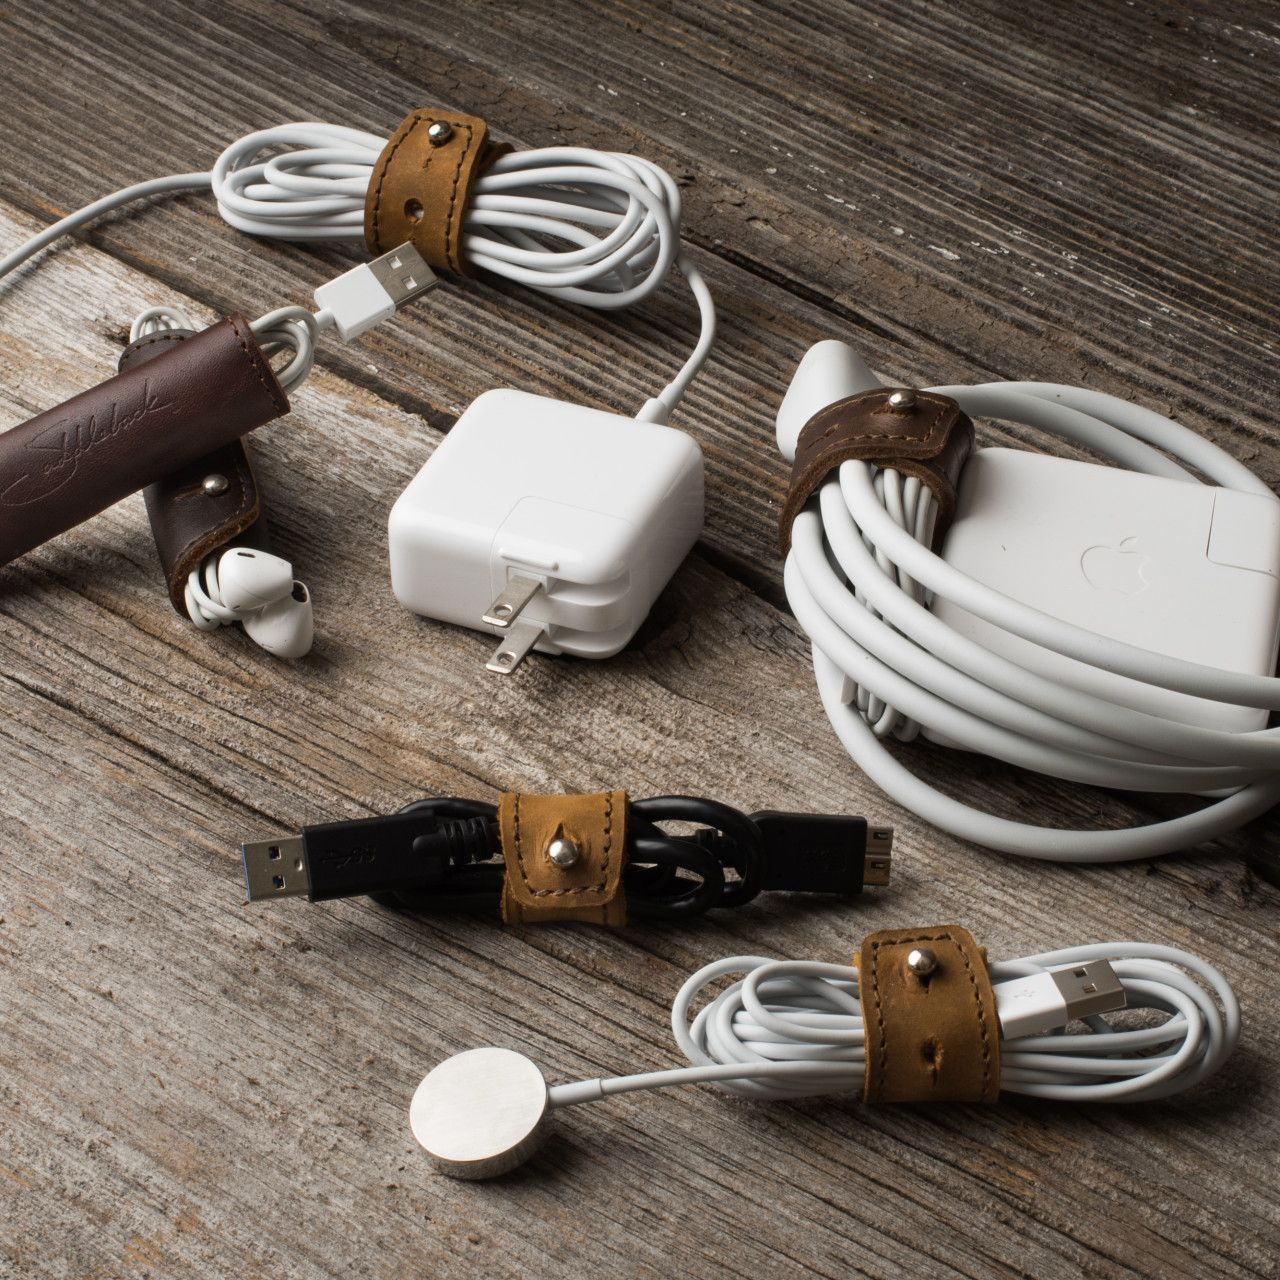 Everything to macbooka locked in leather cord wrap set in leather